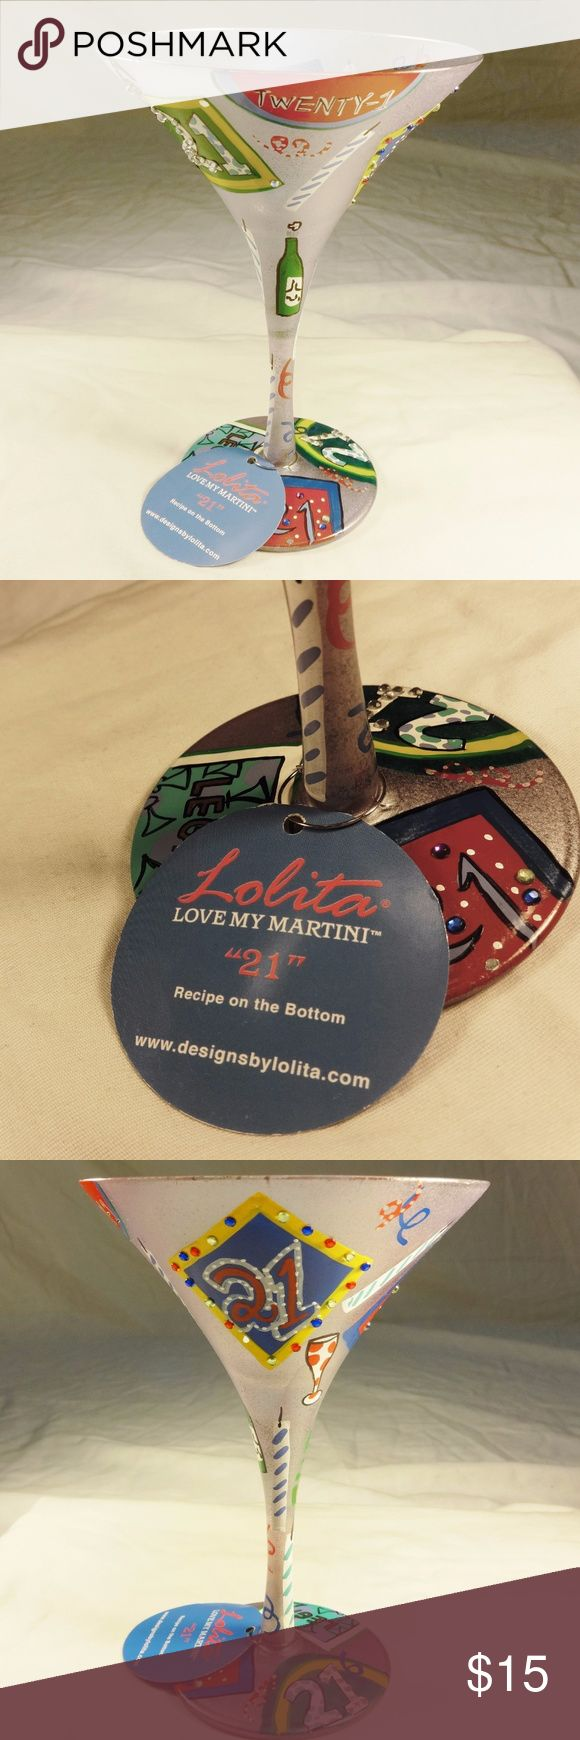 """Lolita I Love My Martini """"21"""" Martini Glass Get your party on and celebrate your 21st birthday (or any day) with this Lolita martini glass! Brightly decorated (to give you something to read while you're smashed) including the perfect martini drink recipe on the bottom. Cheers! Lolita Other"""